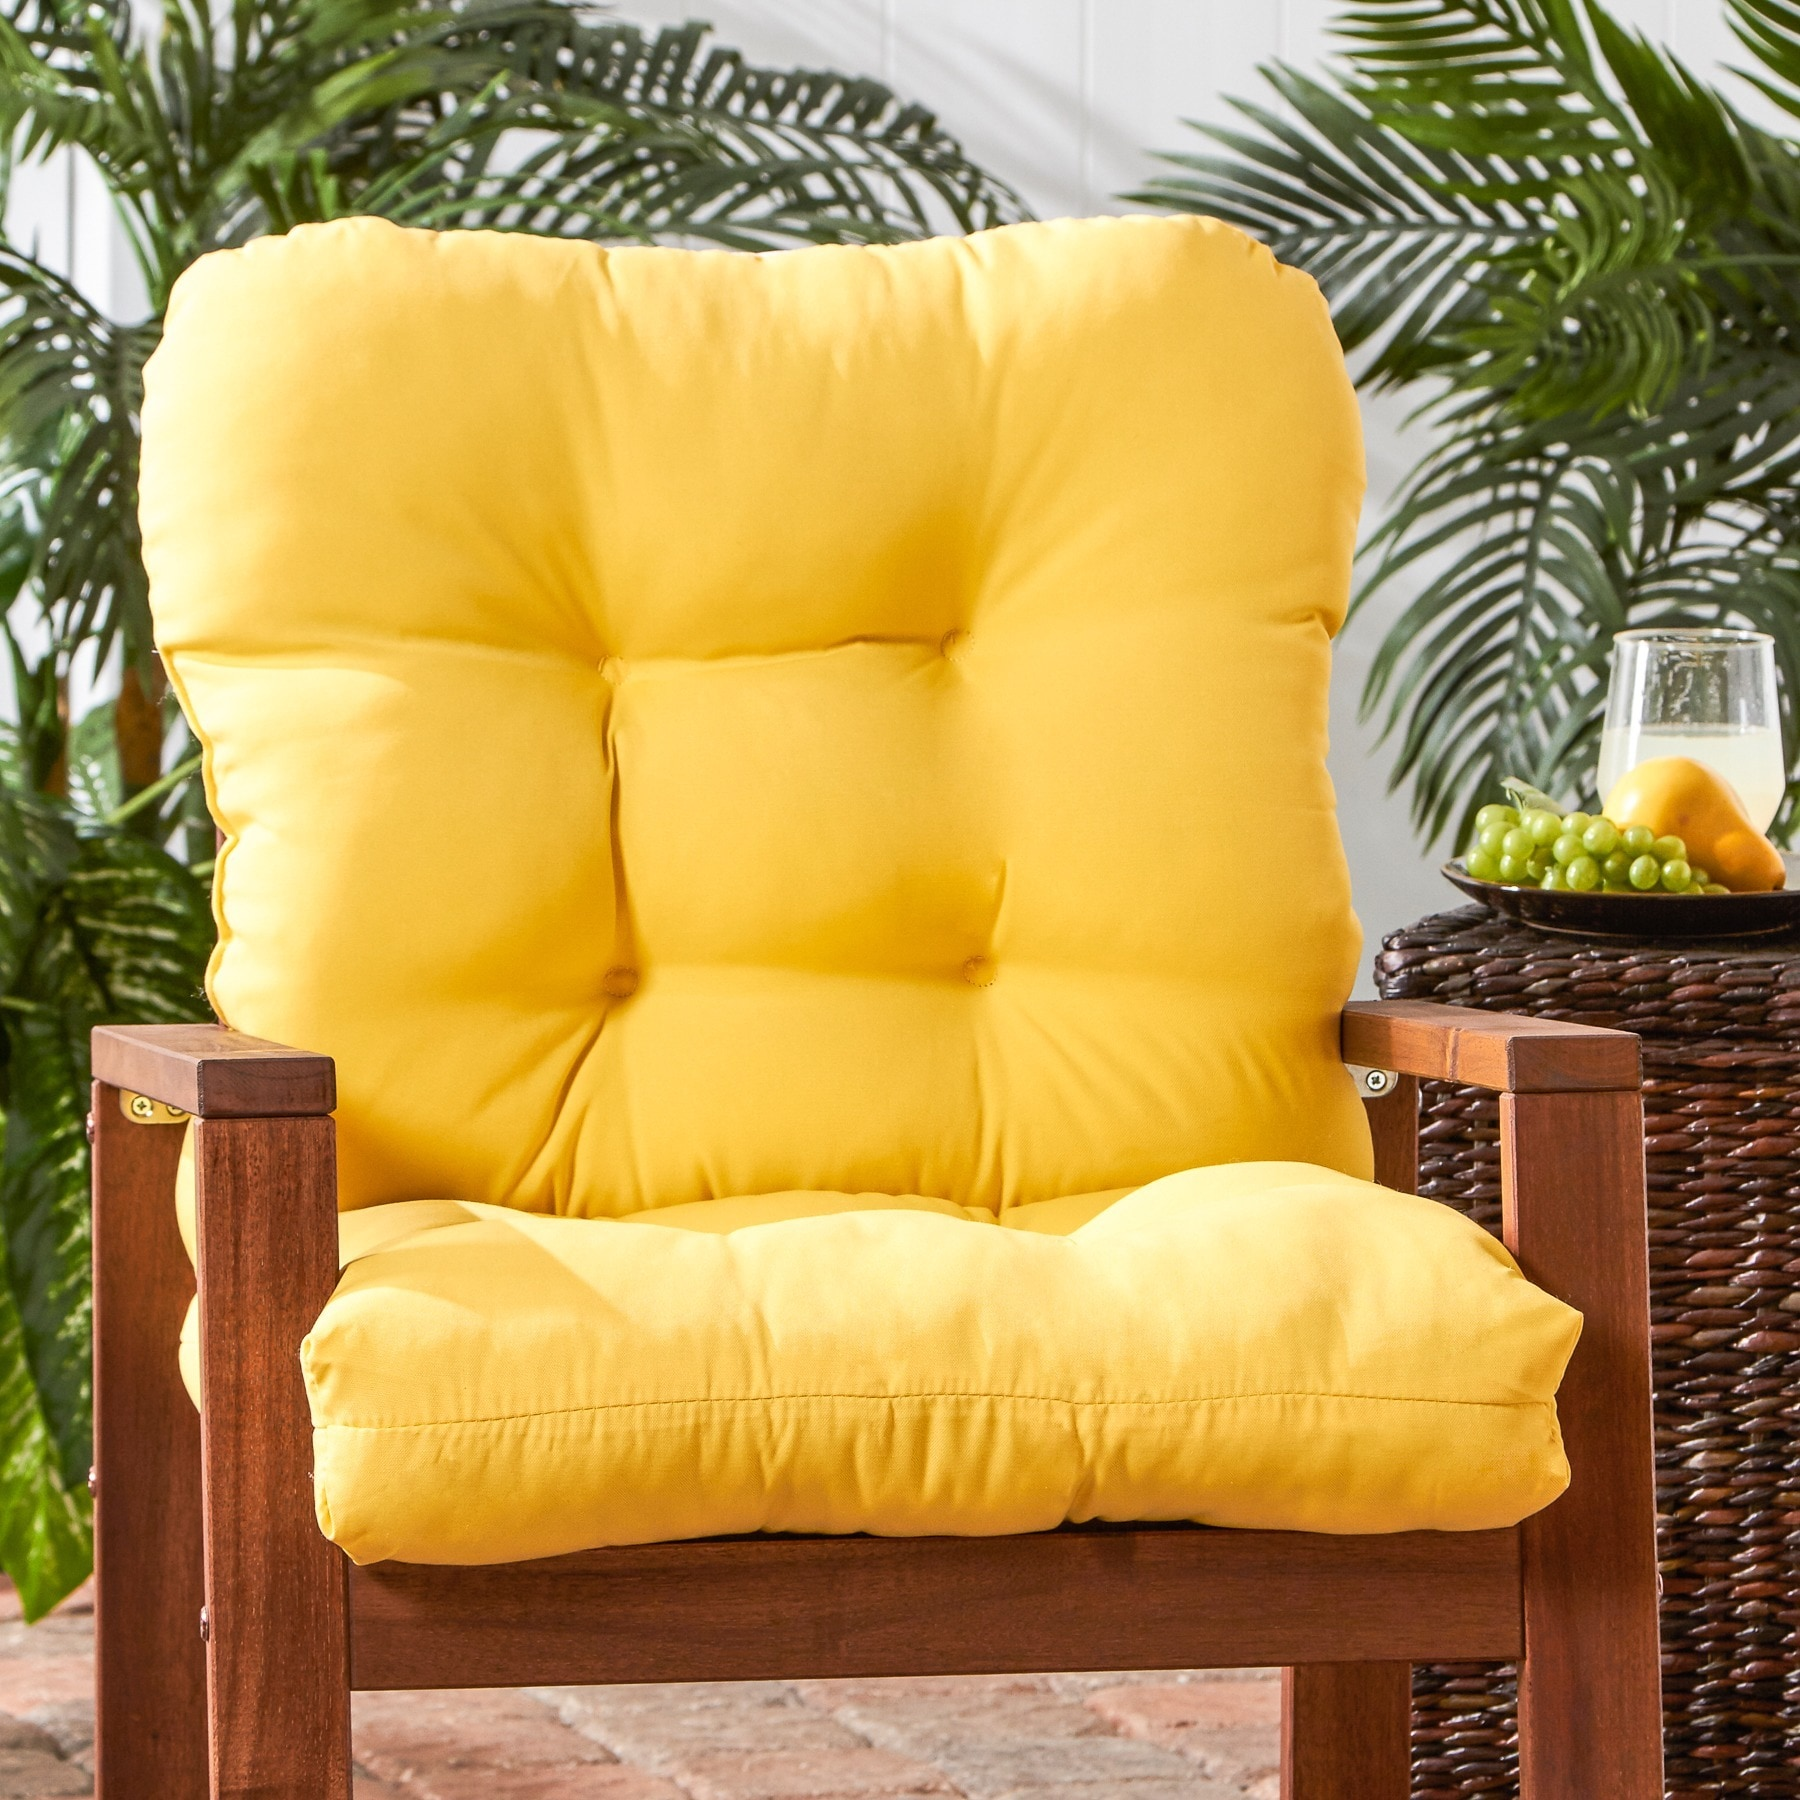 Greendale Home Fashions Outdoor Sunbeam Seat Back Chair Cushion 21w X 42l Free Shipping On Orders Over 45 6585196